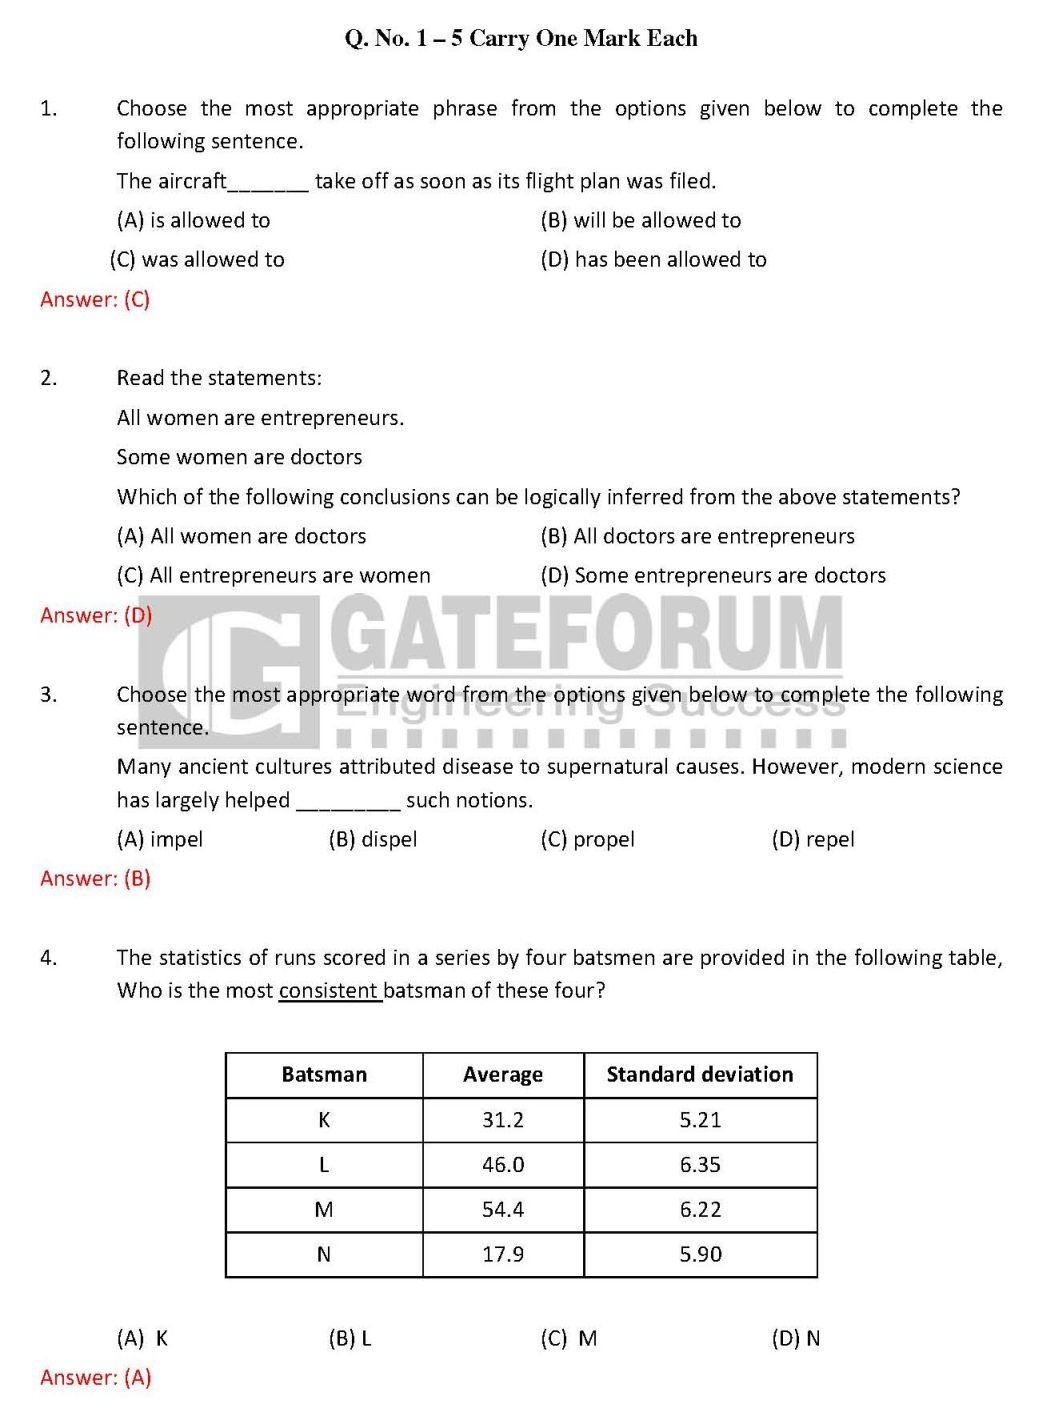 Alien periodic table lab images periodic table images alien periodic table lab gallery periodic table images graduate aptitude test in engineering solved question papers gamestrikefo Choice Image